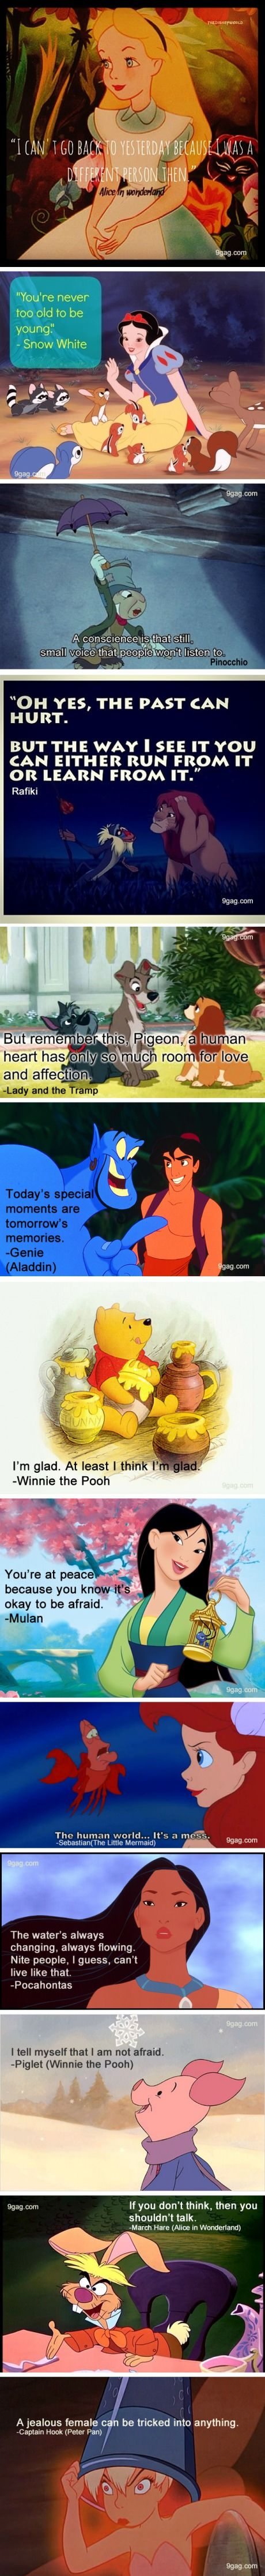 Shockingly Profound Disney Movies Quotes